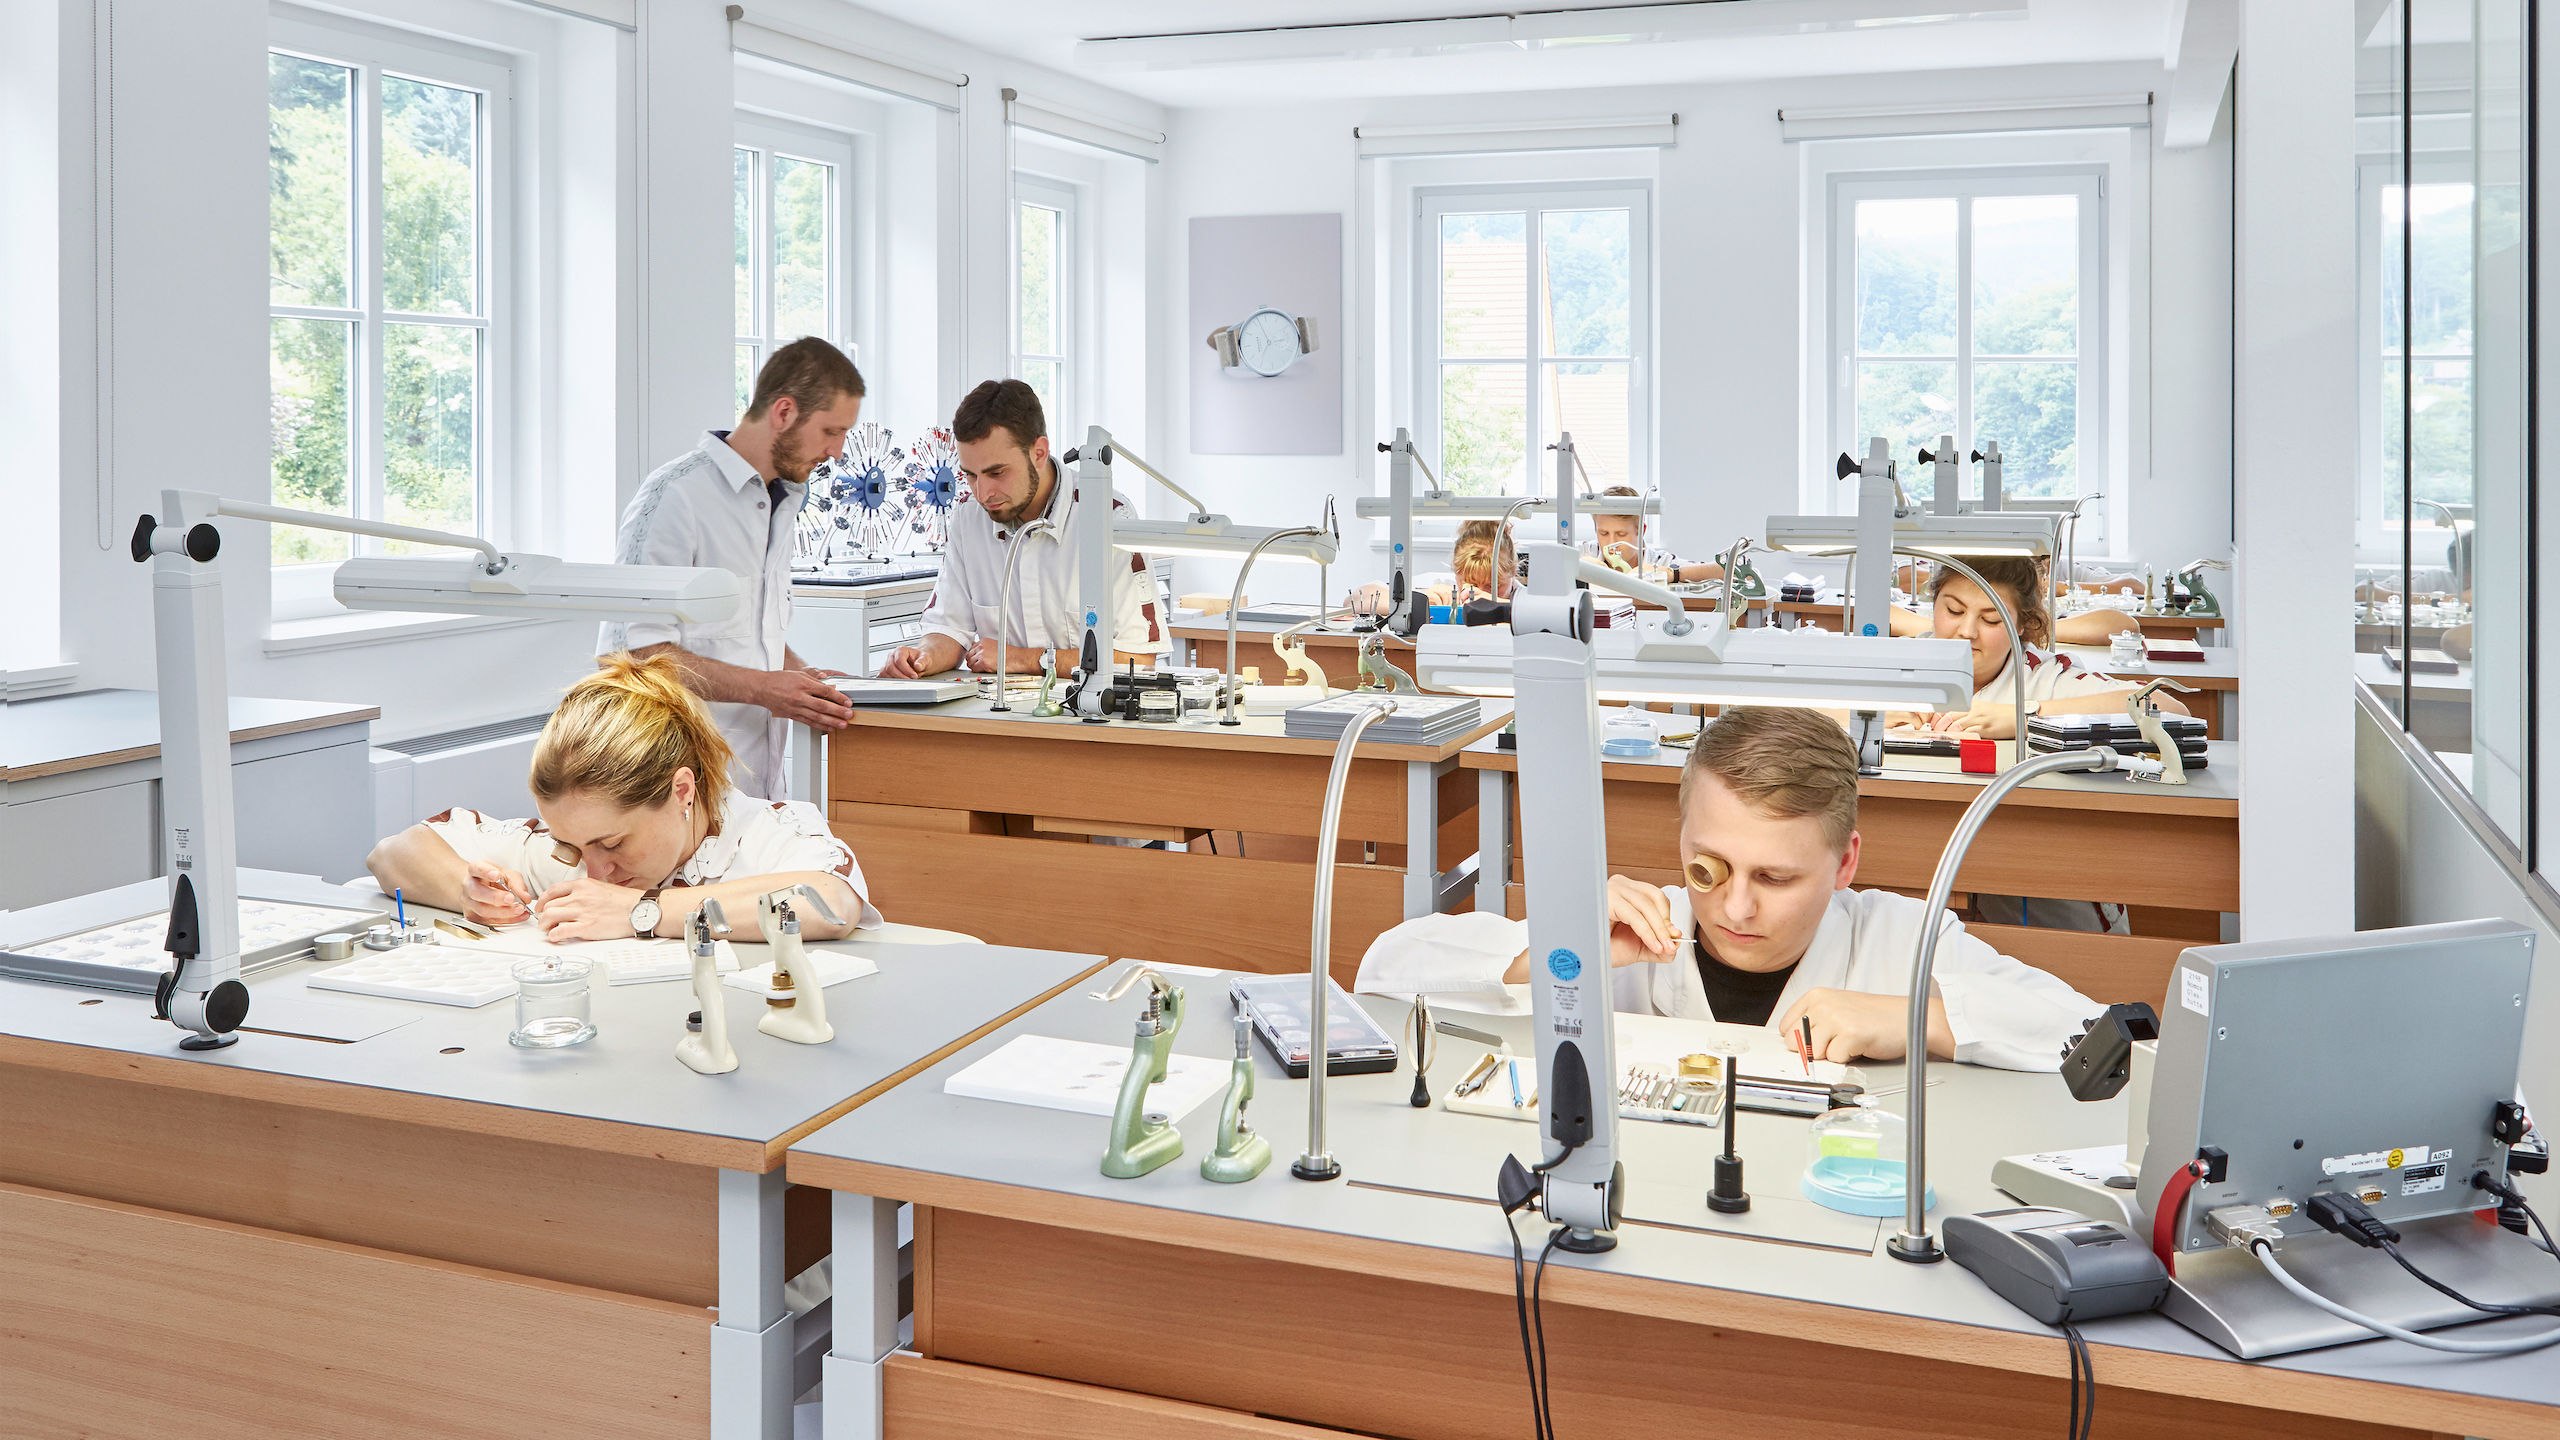 Image of people working in a watch making work space